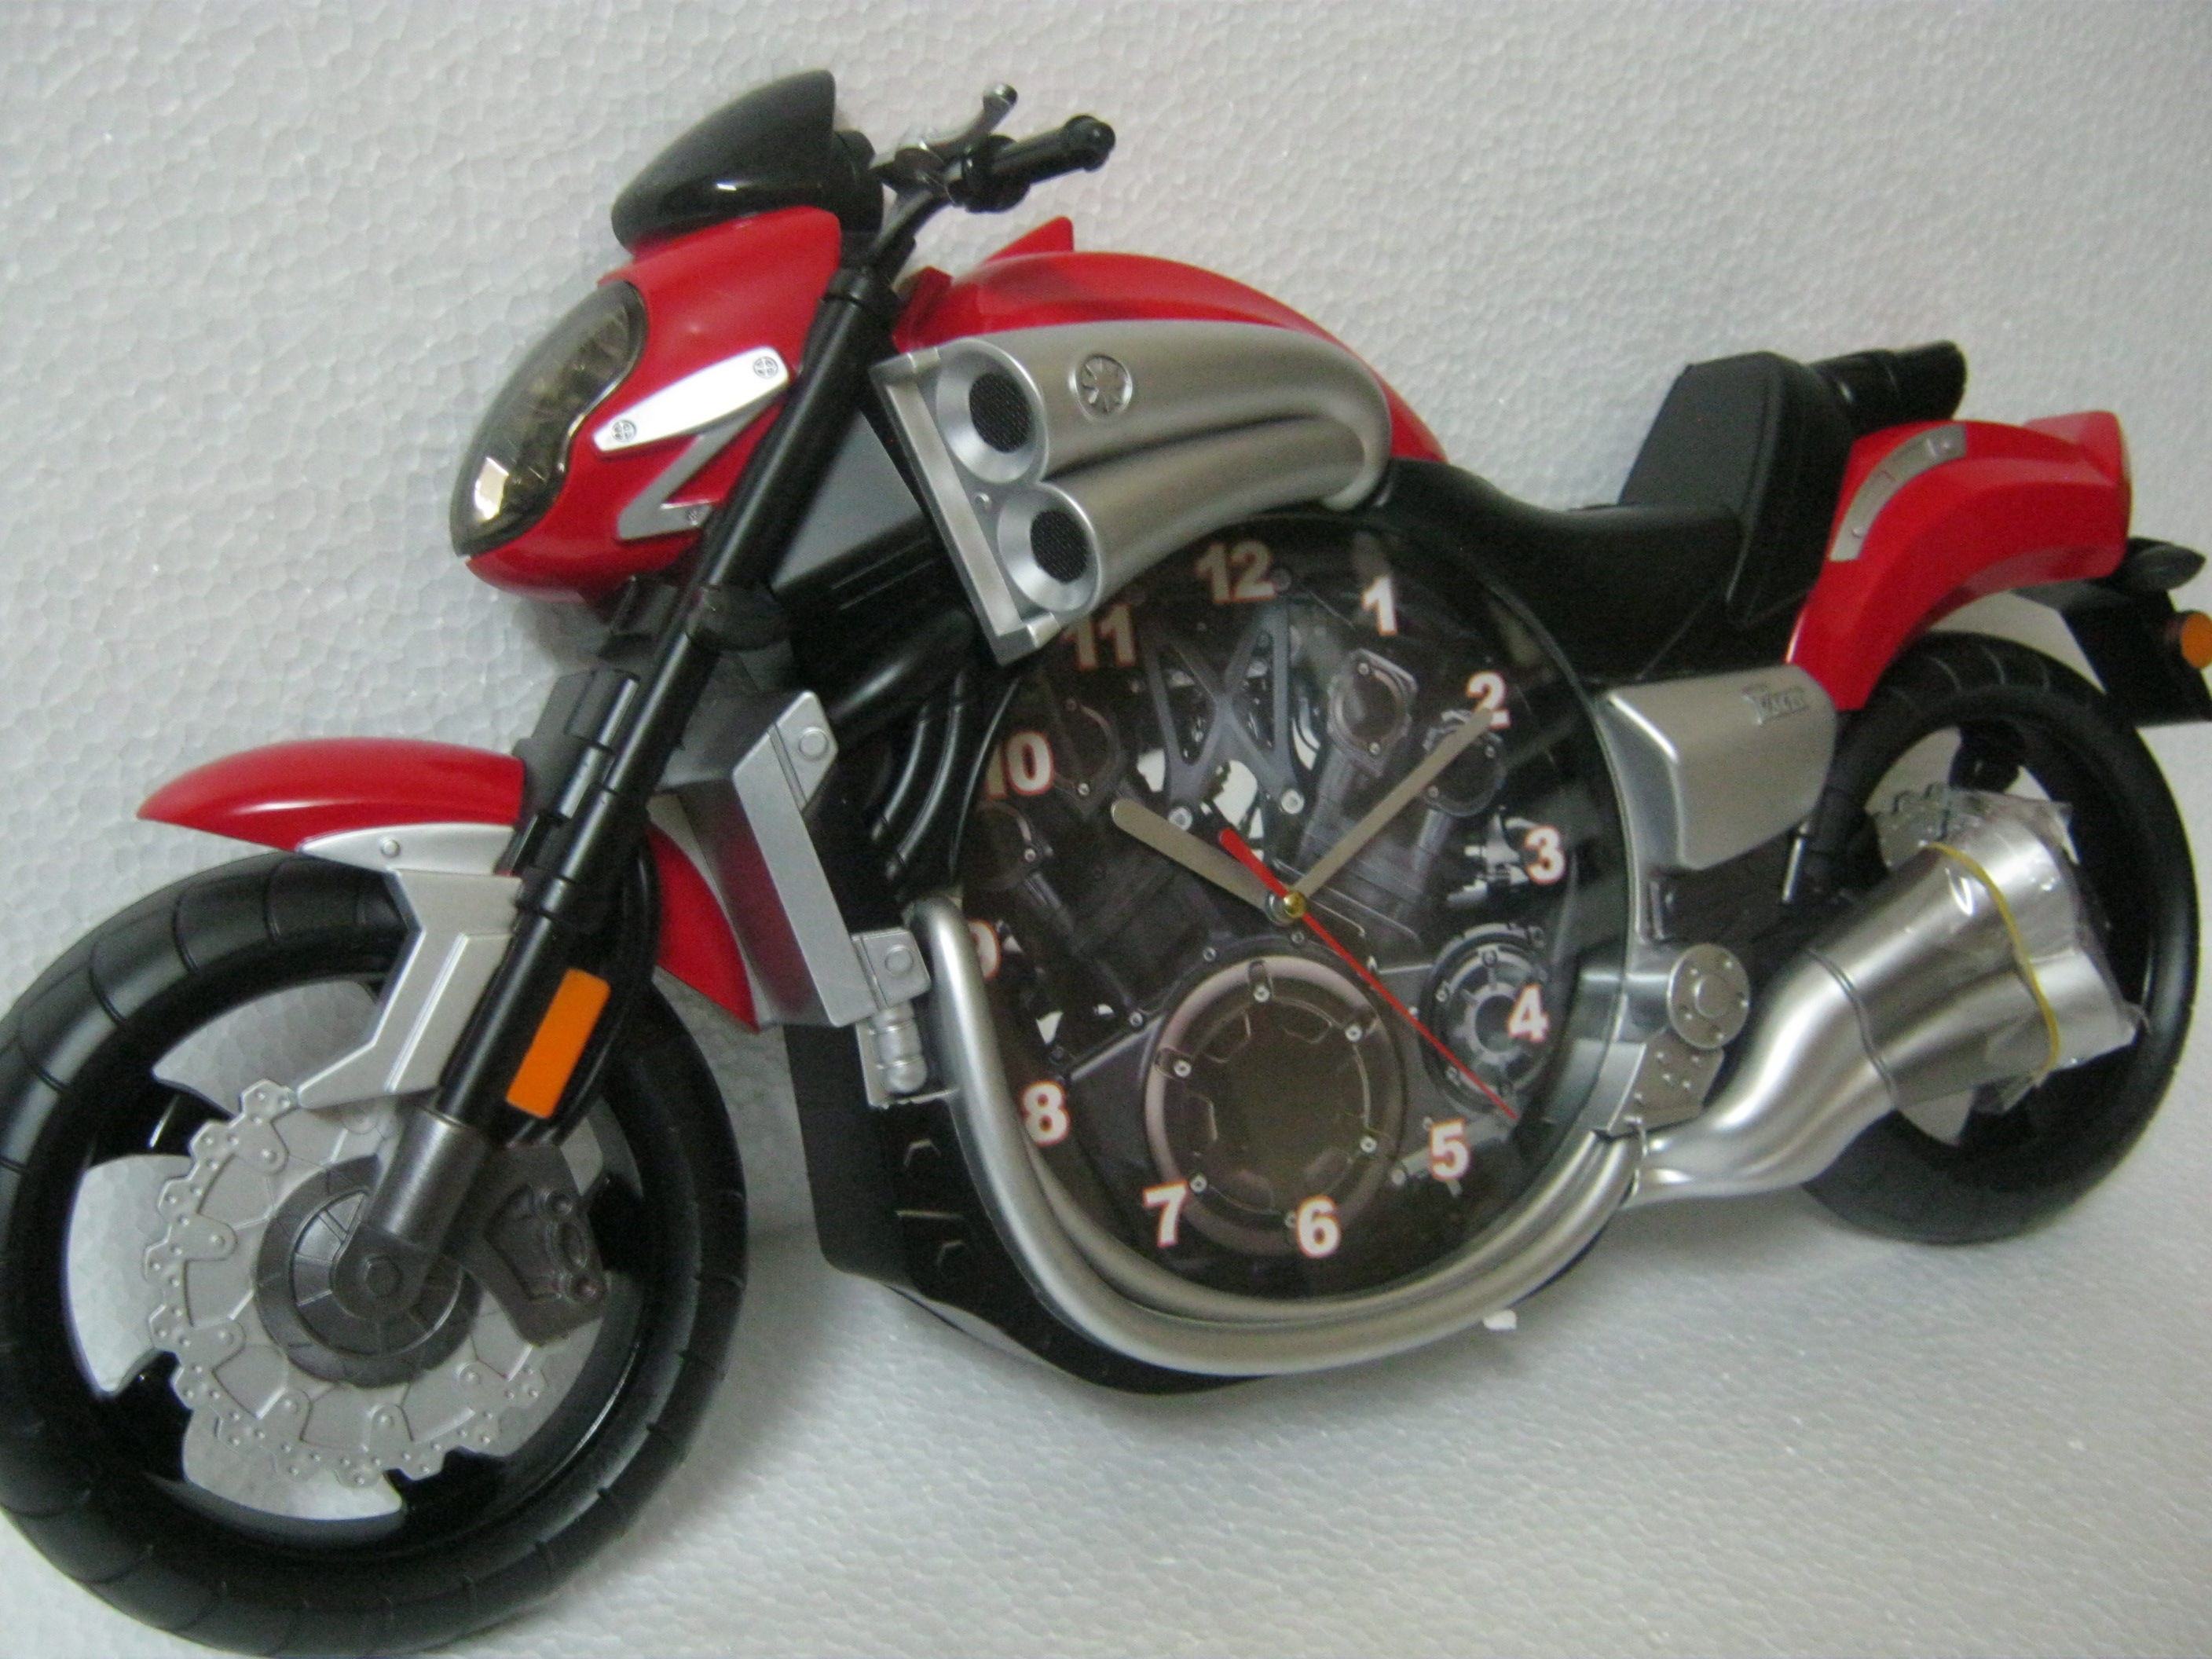 New Bullet Bike Photos Bullet Bike Wall Clock